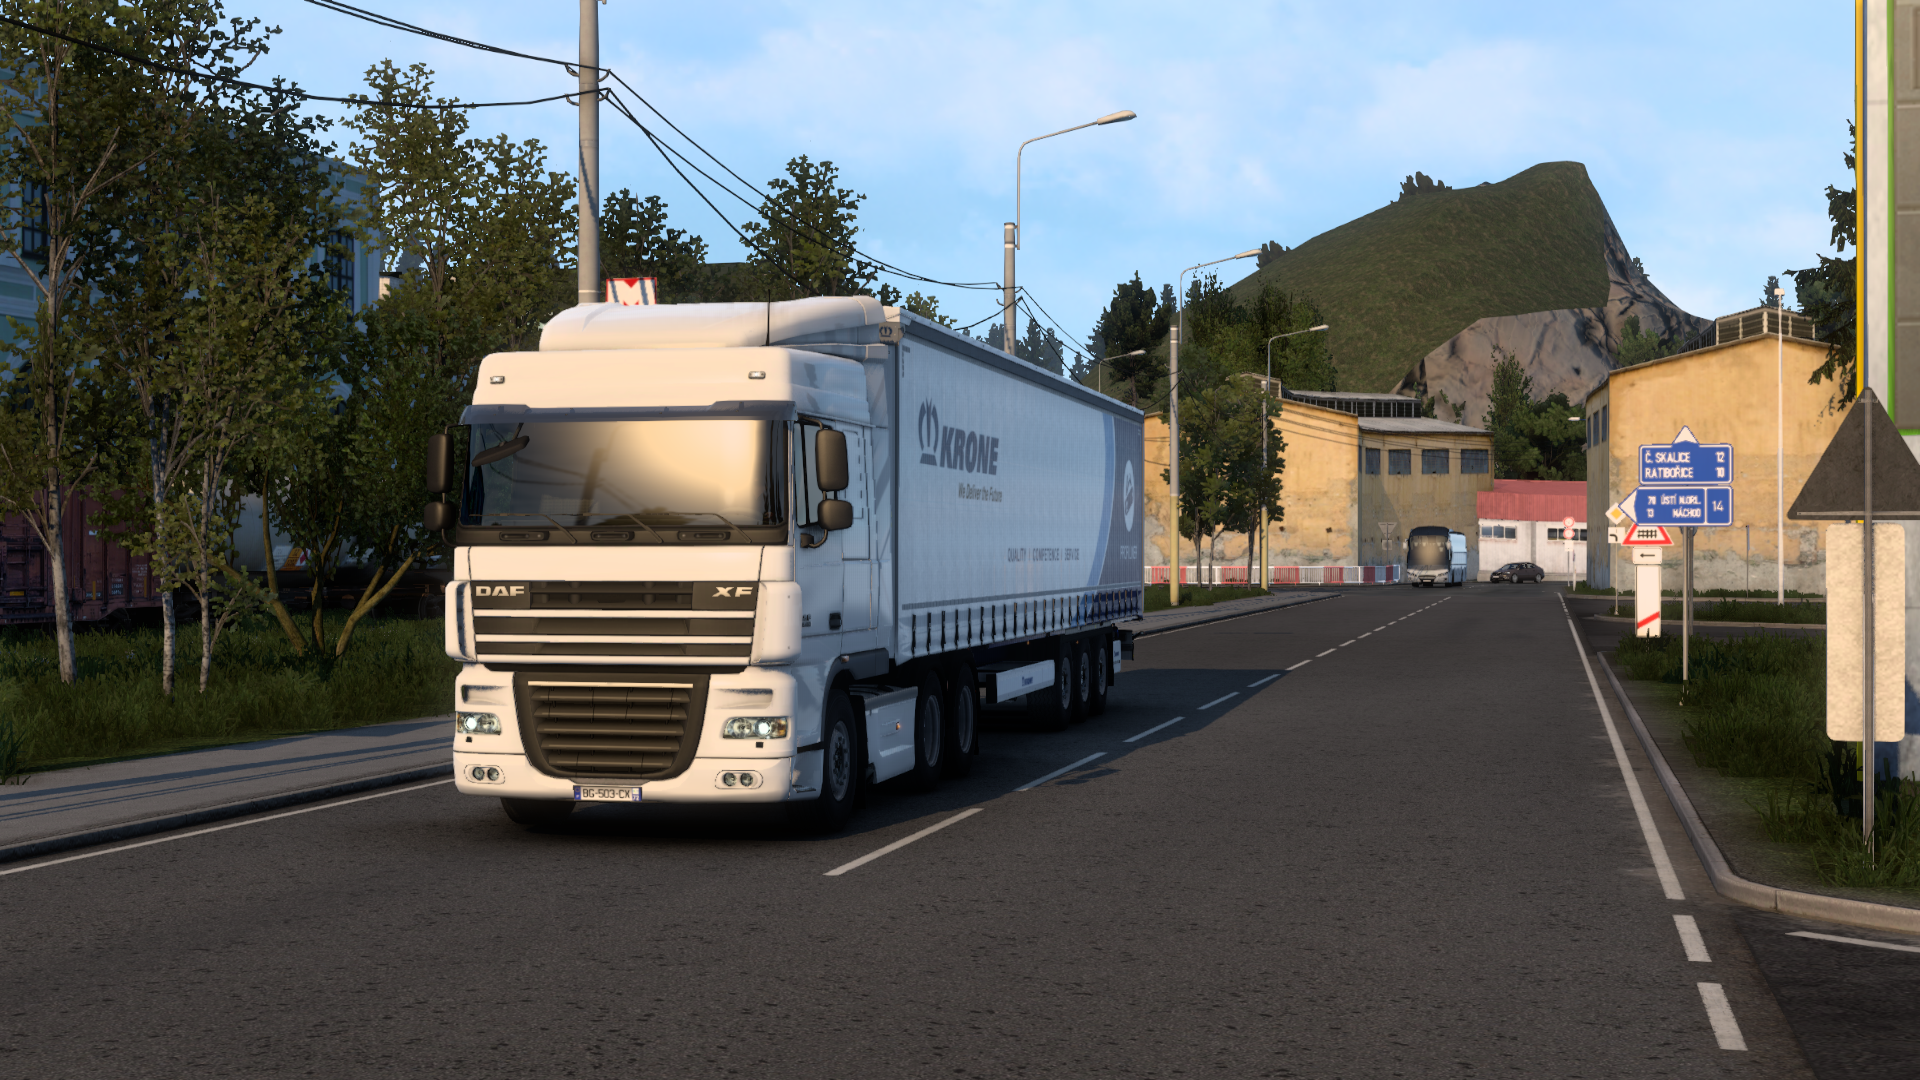 ets2_20211018_215351_00.png